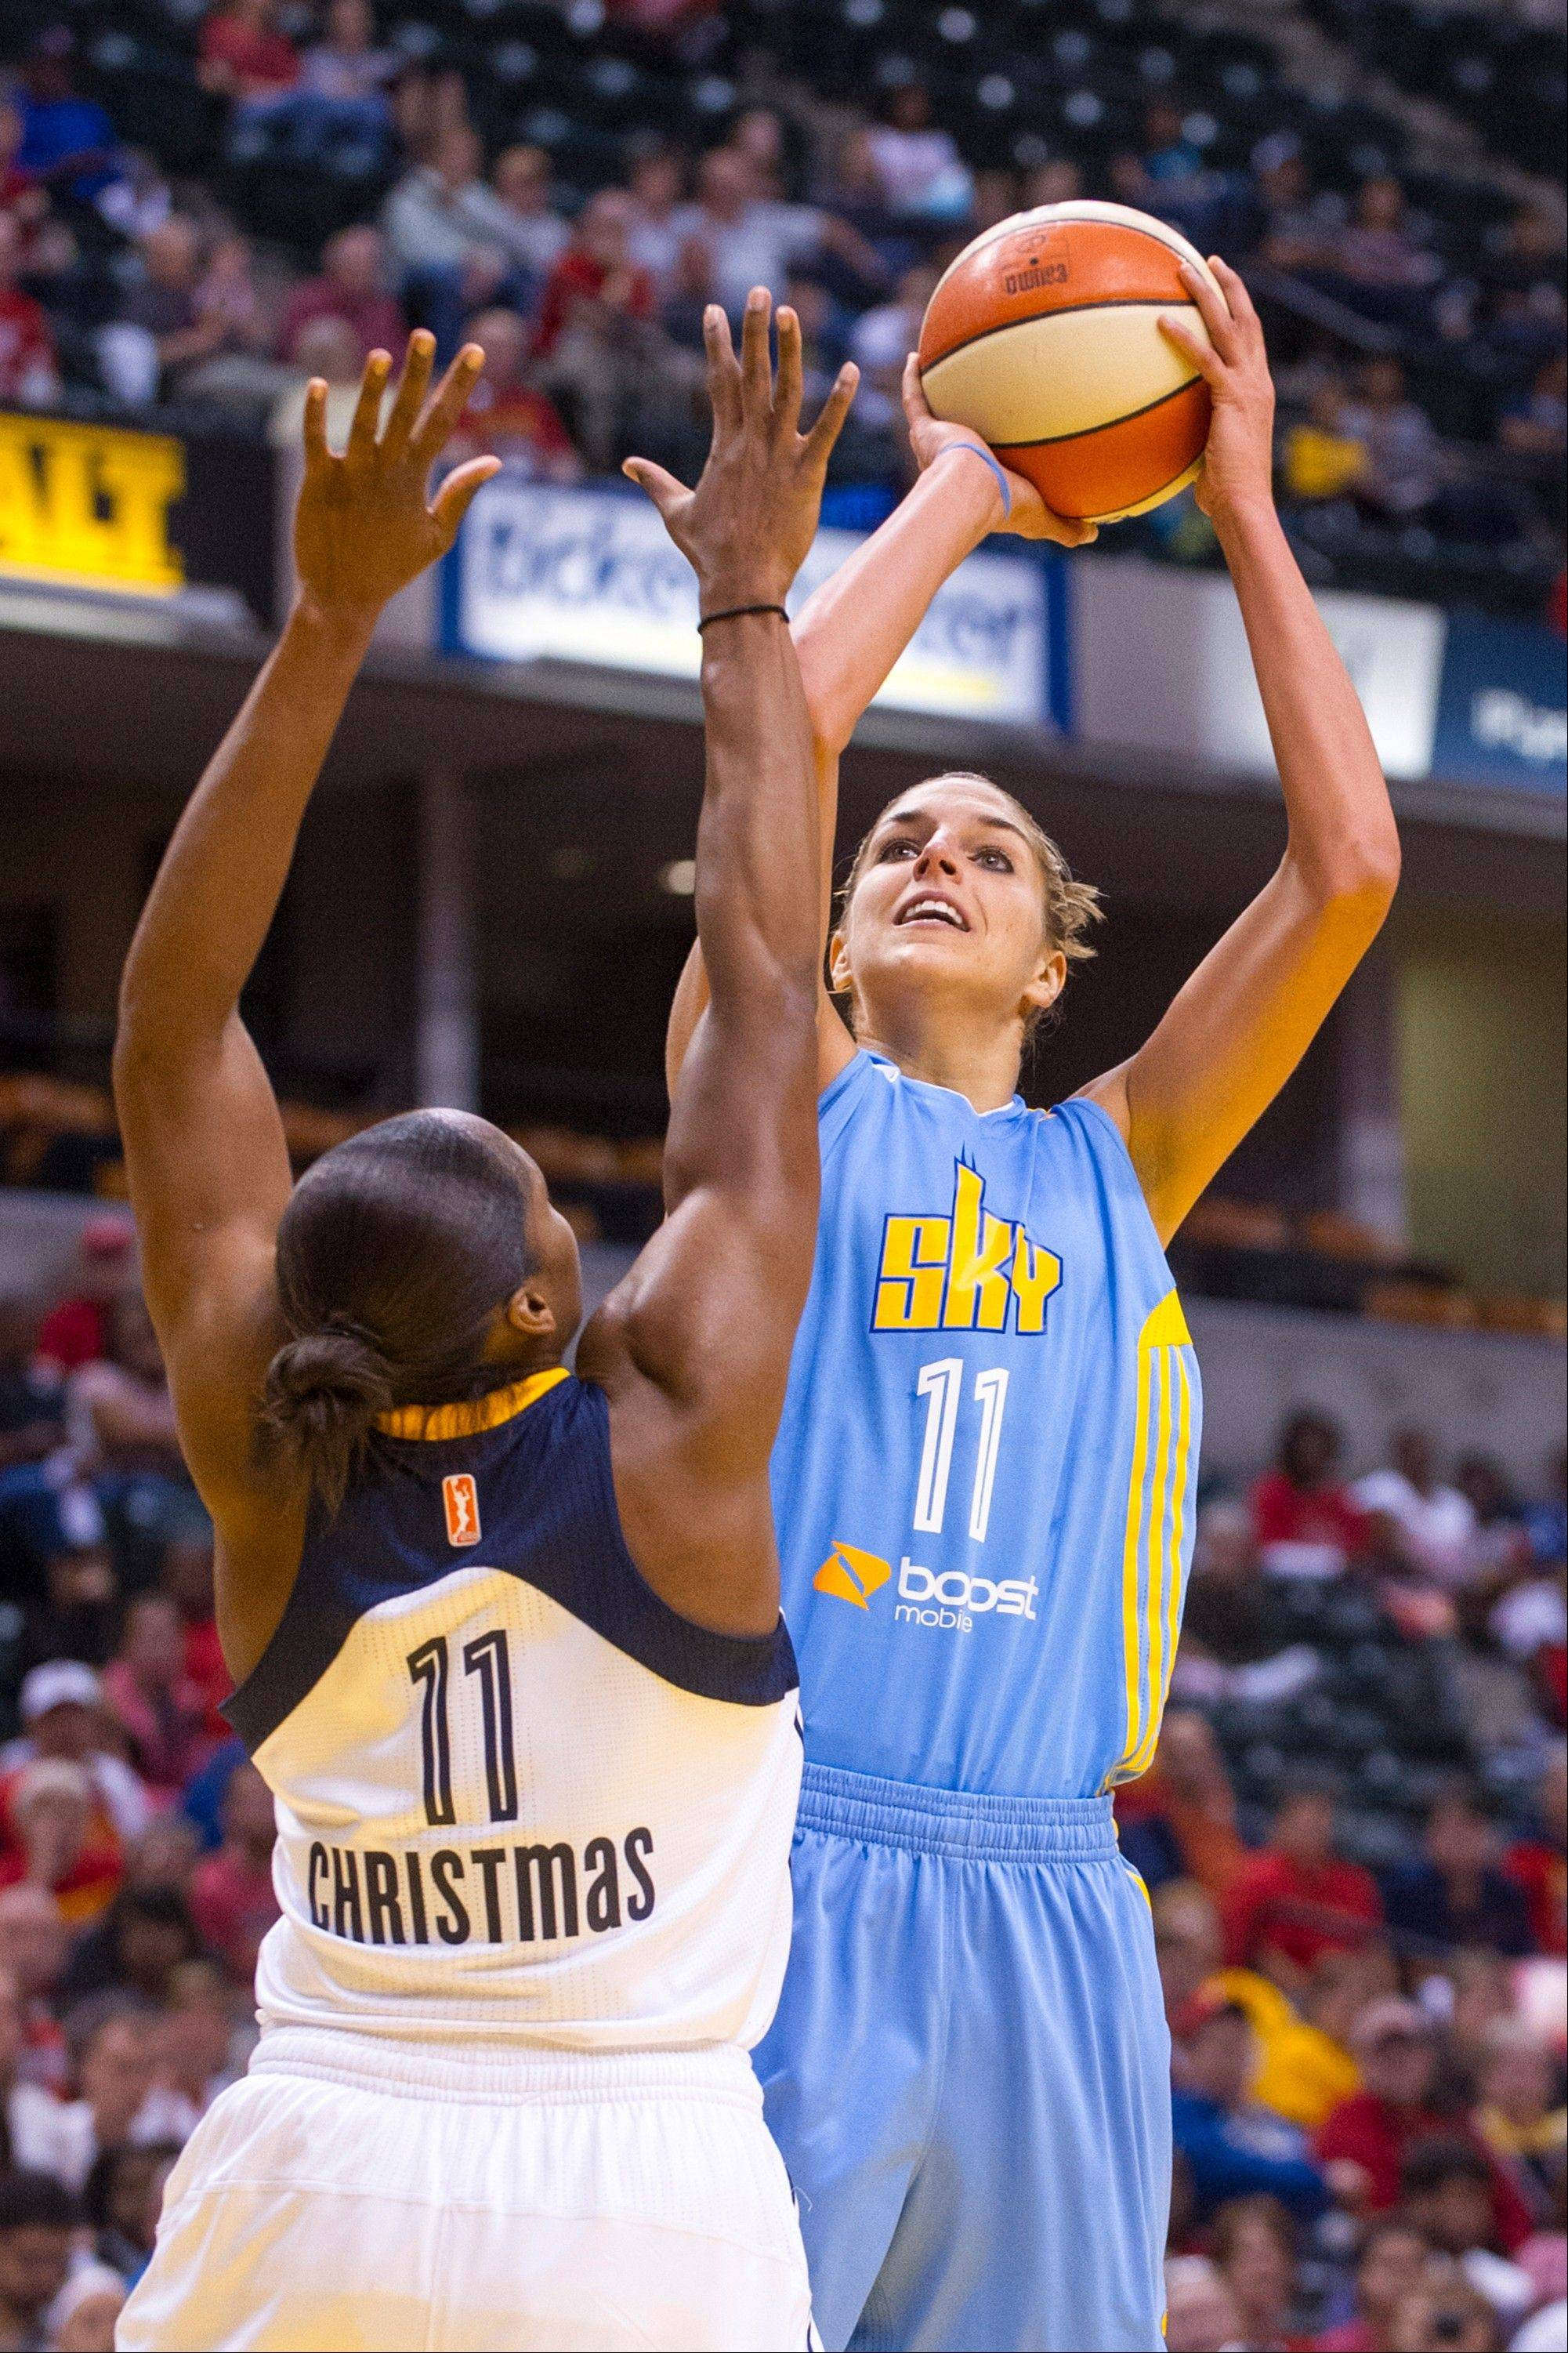 Sky forward Elena Dell Donne takes a shot over the defense of Indiana Fever guard Karima Christmas during Game 2 of the WNBA Eastern Conference semifinals.